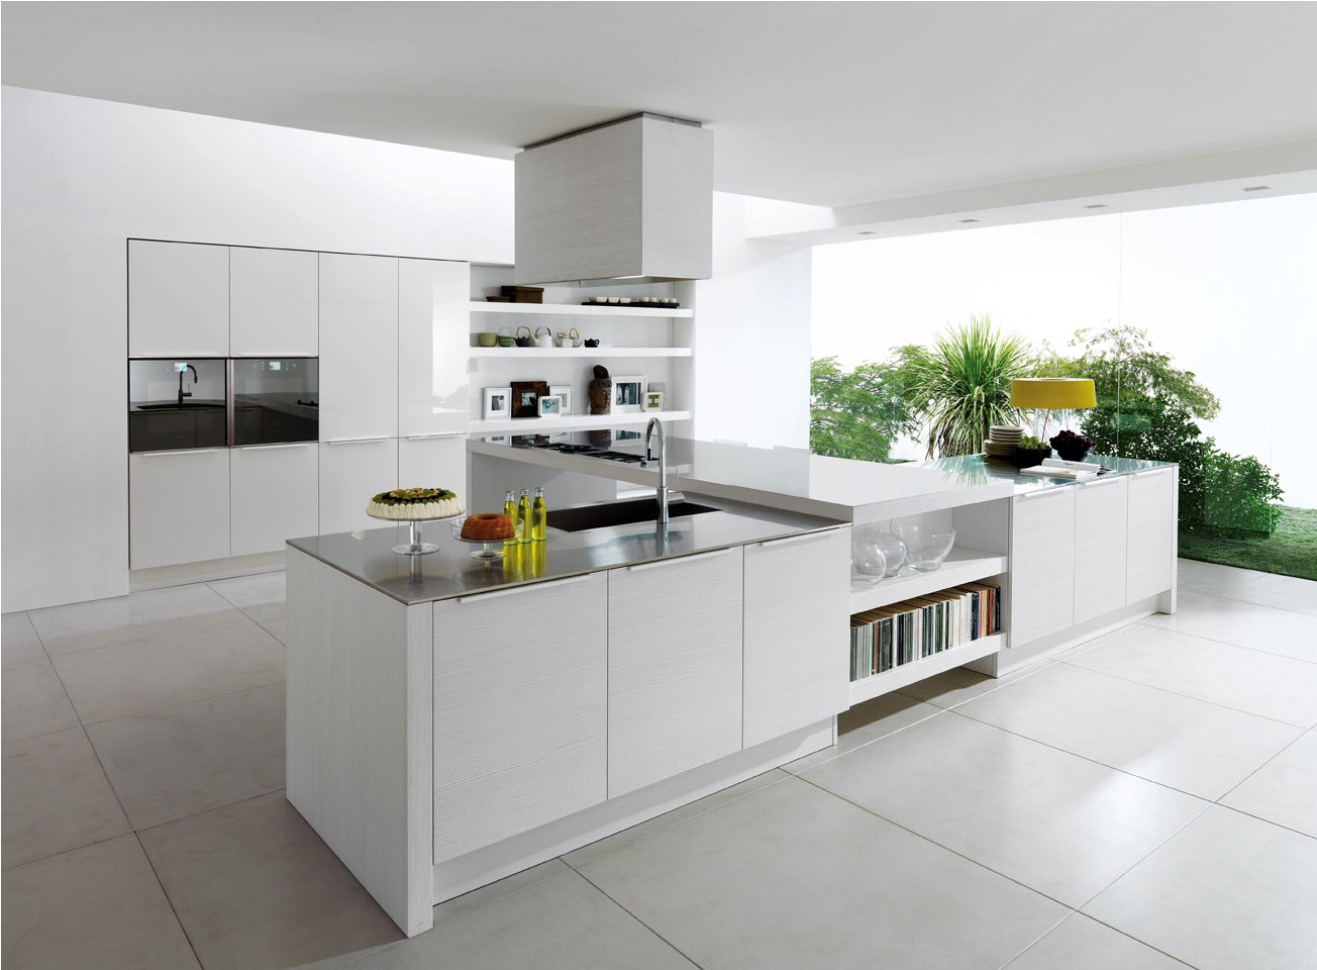 11 Awesome And Modern Kitchen Design Ideas